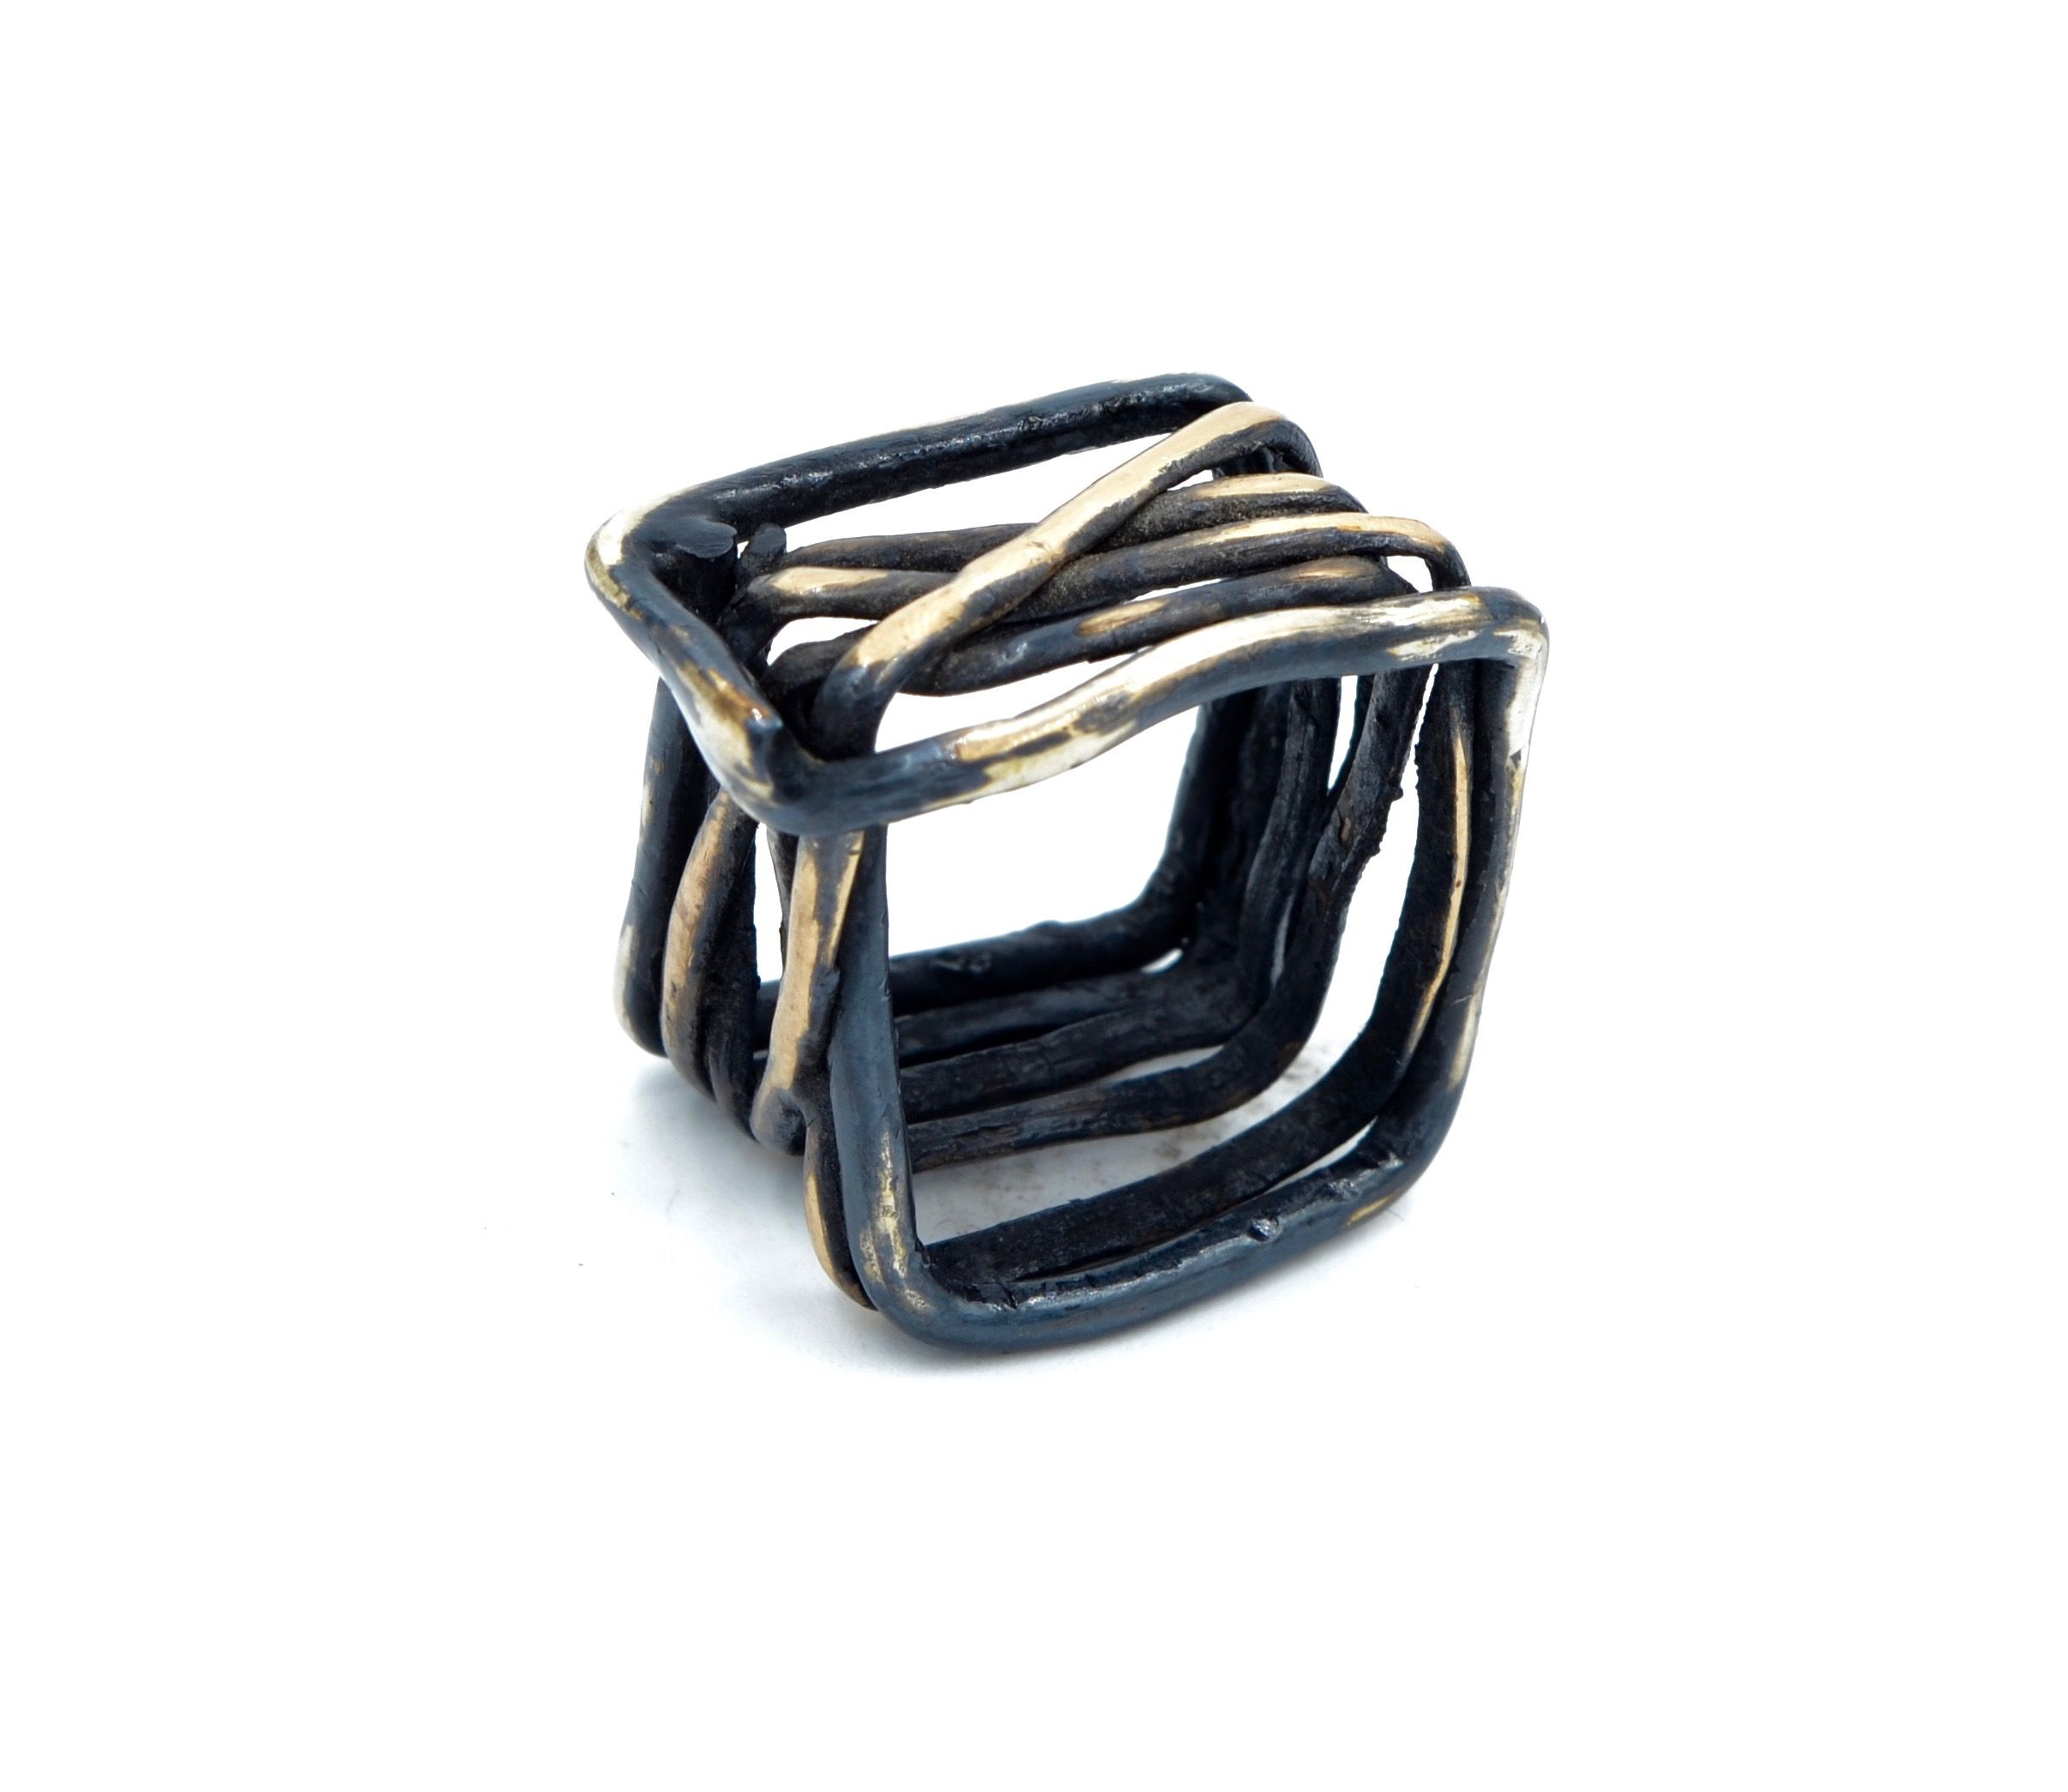 Oxidized Sterling silver and Brass square ring. MetalurJ